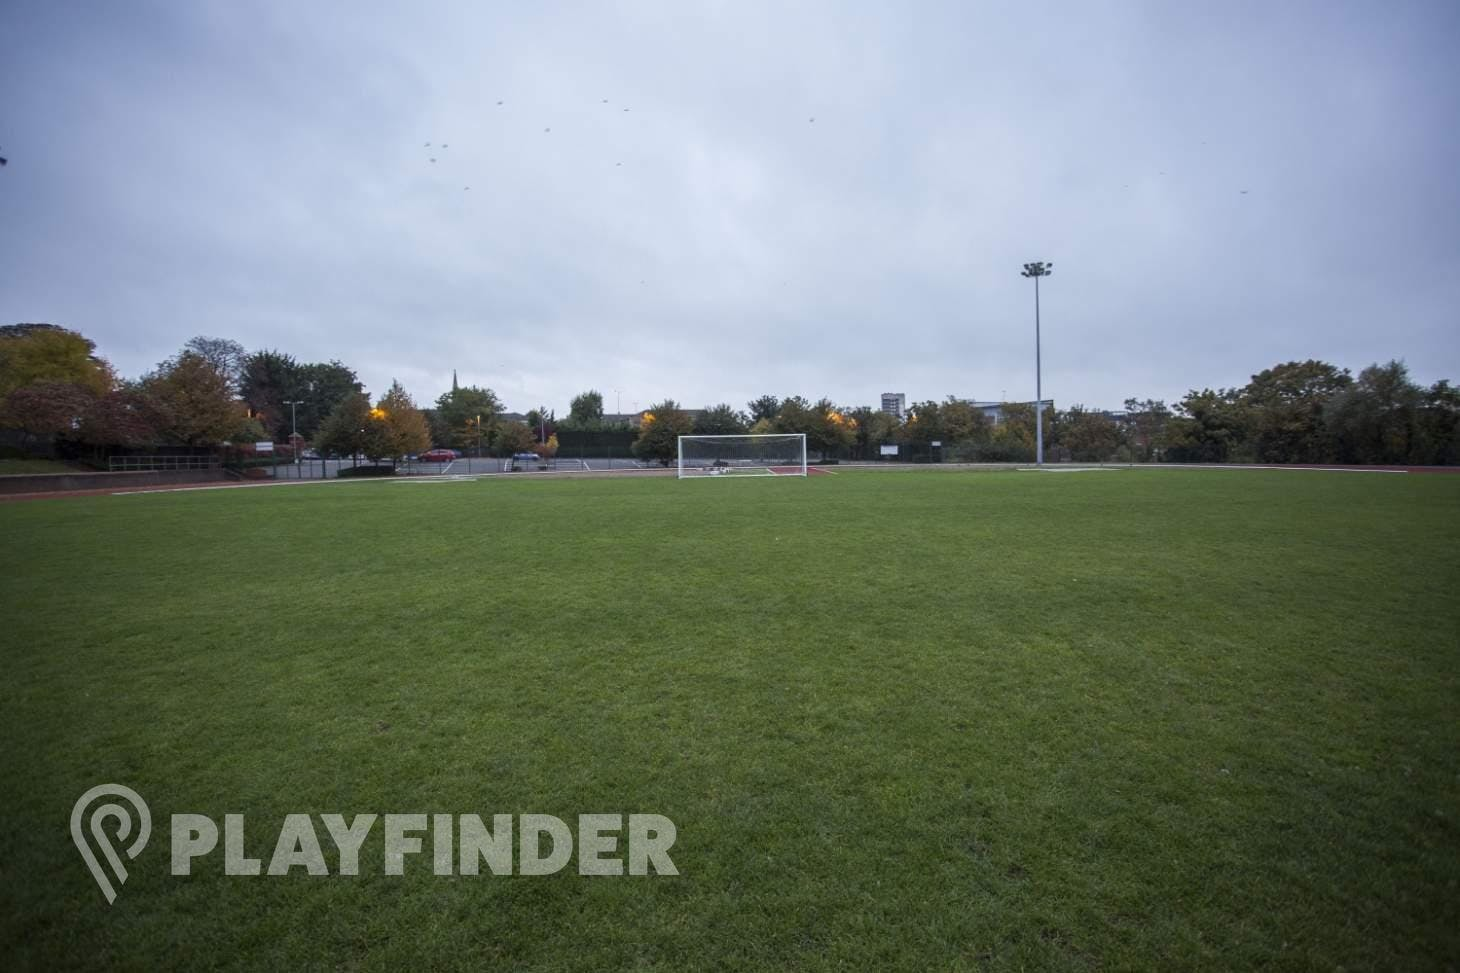 Erith Leisure Centre 11 a side | Grass football pitch